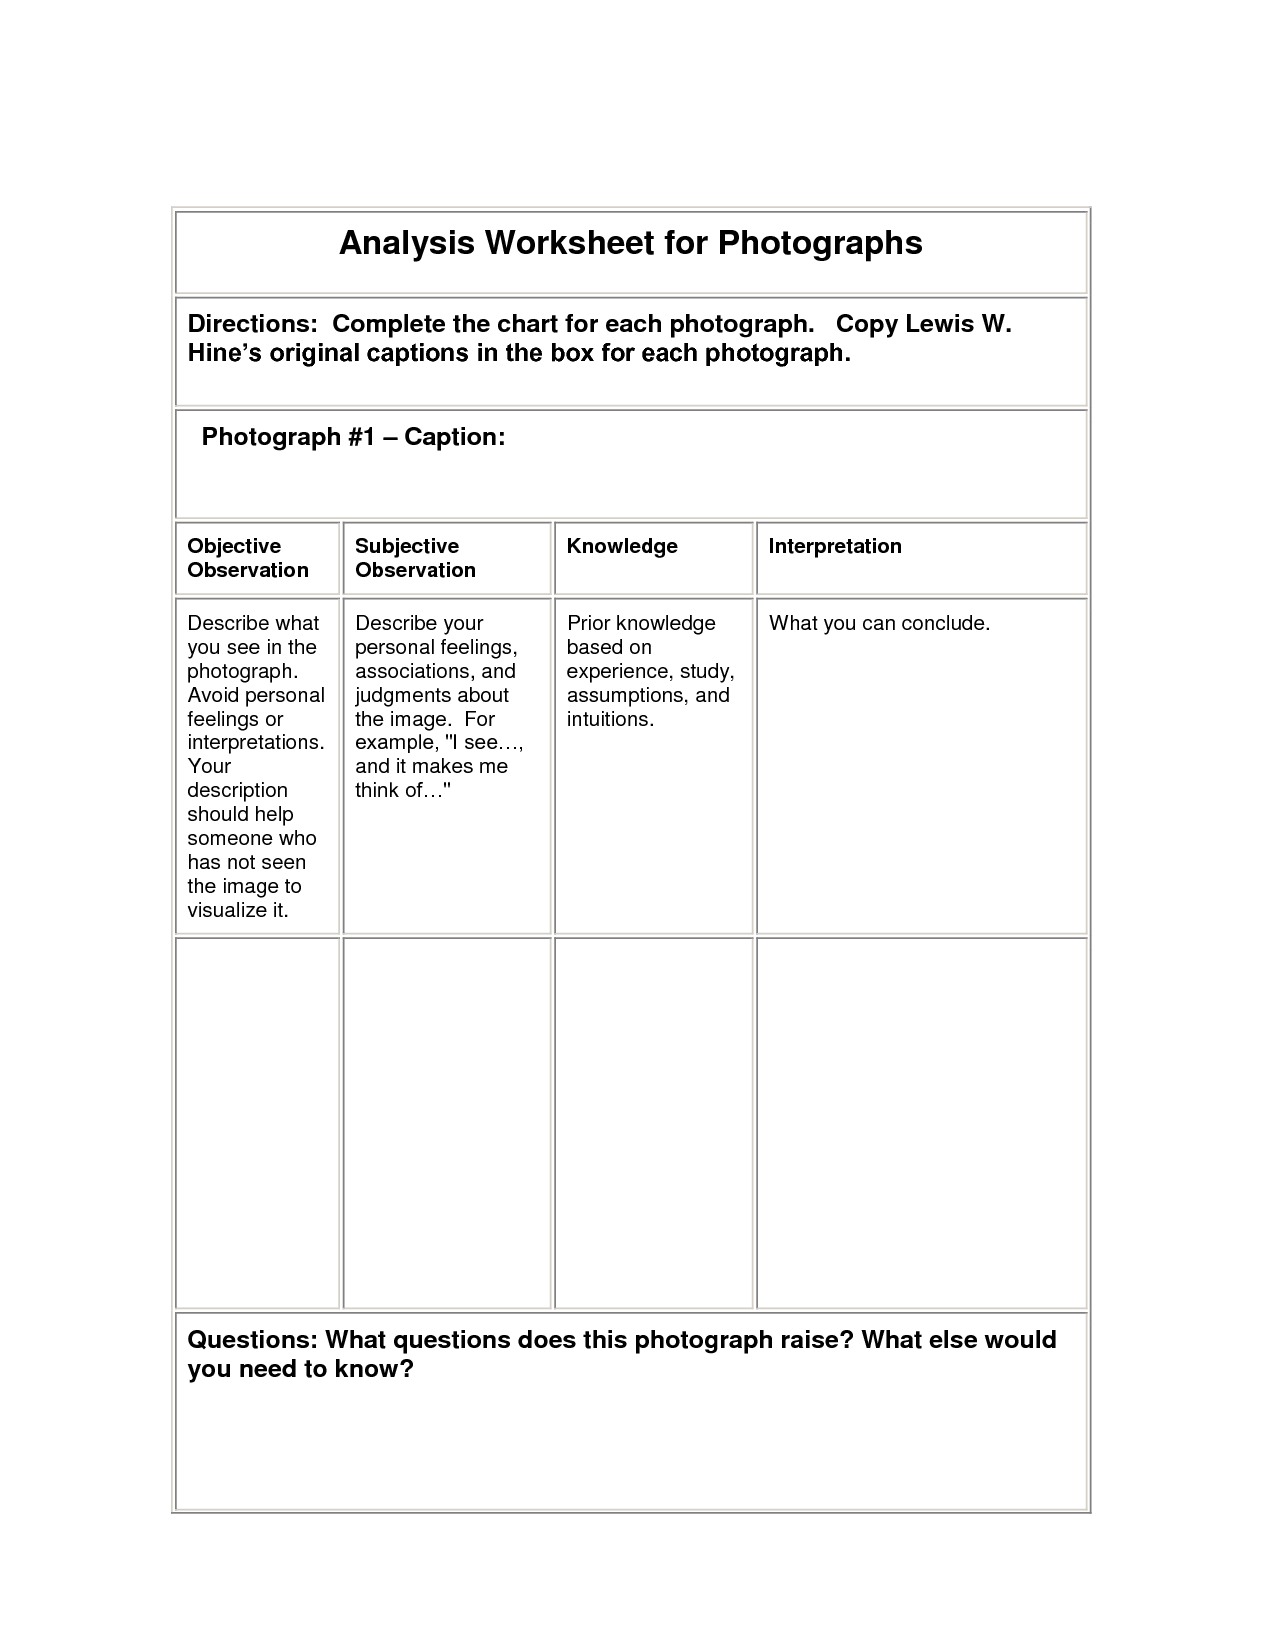 Ysis Worksheet For Lewis Hine Photographs